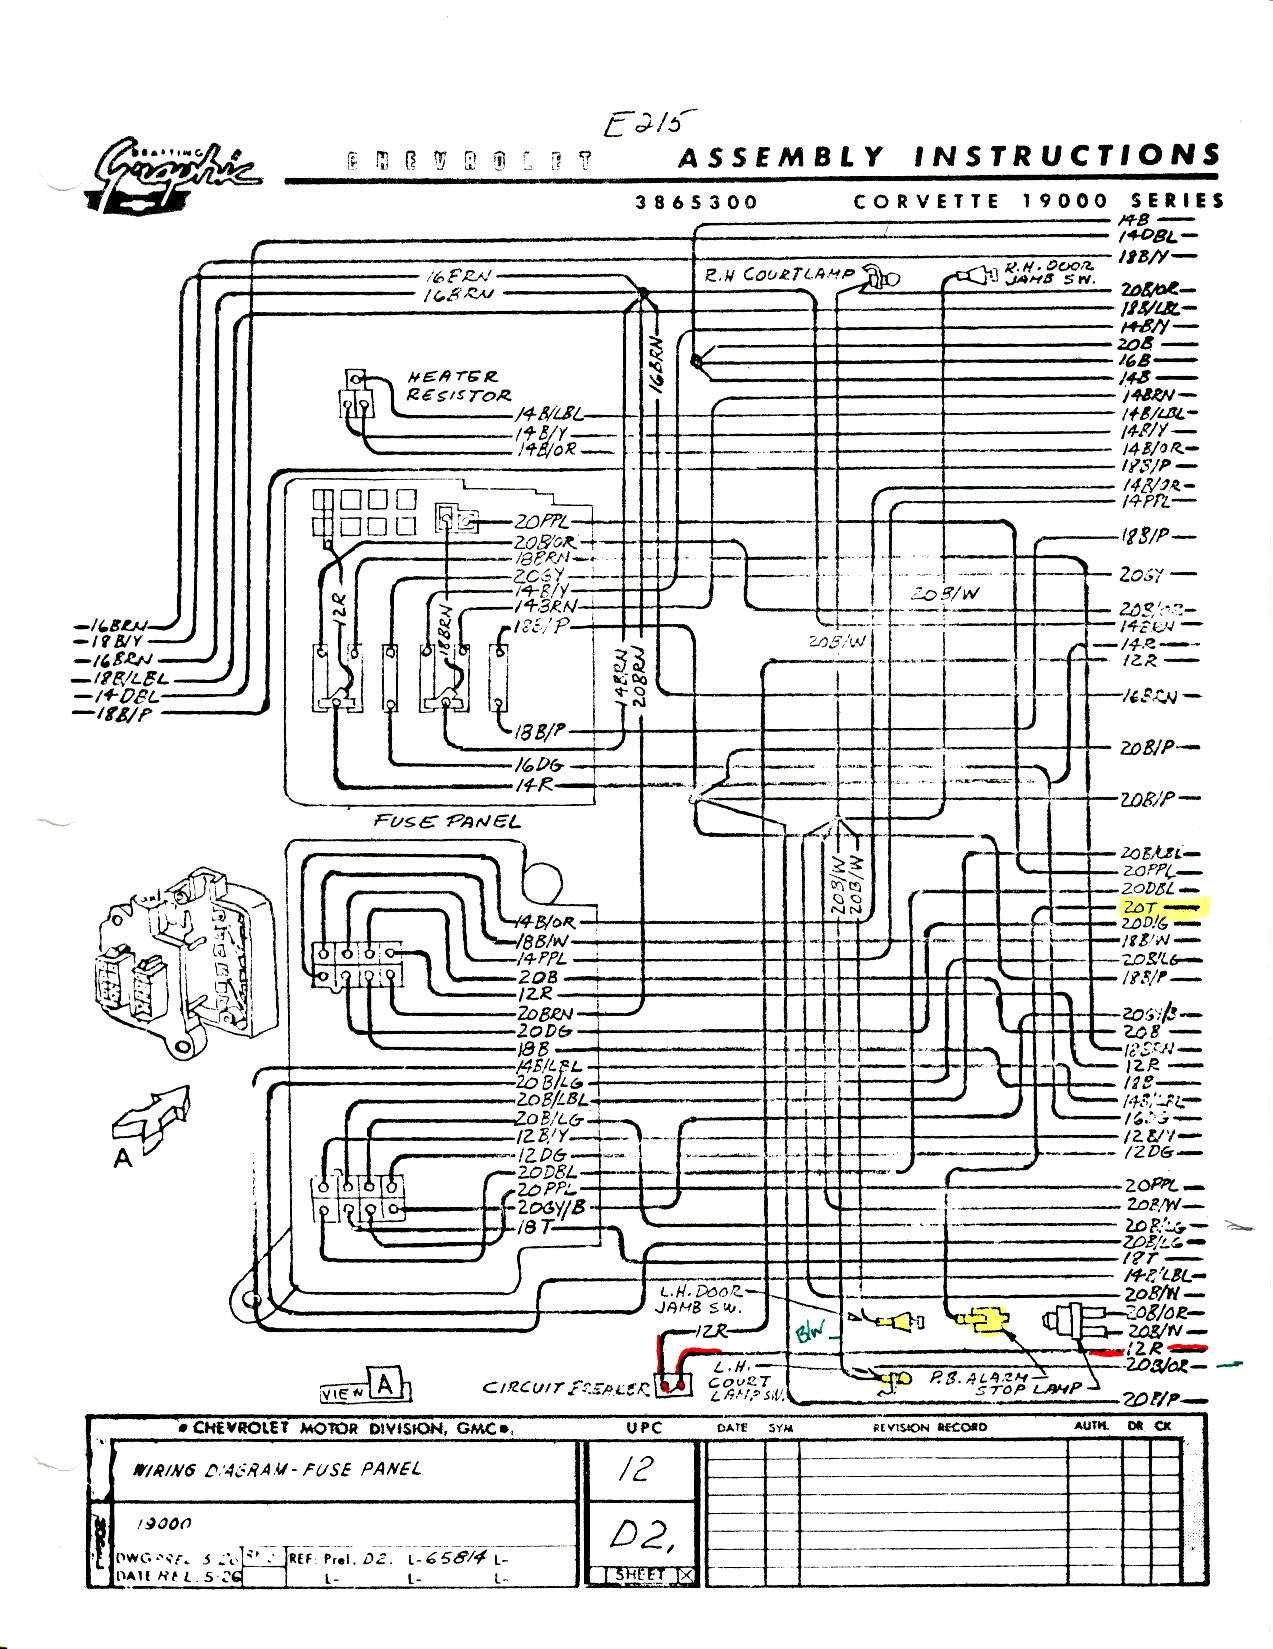 hight resolution of c6 corvette fuse box harness wiring diagrams scematic 1991 corvette wiring diagram 2009 corvette wiring diagram